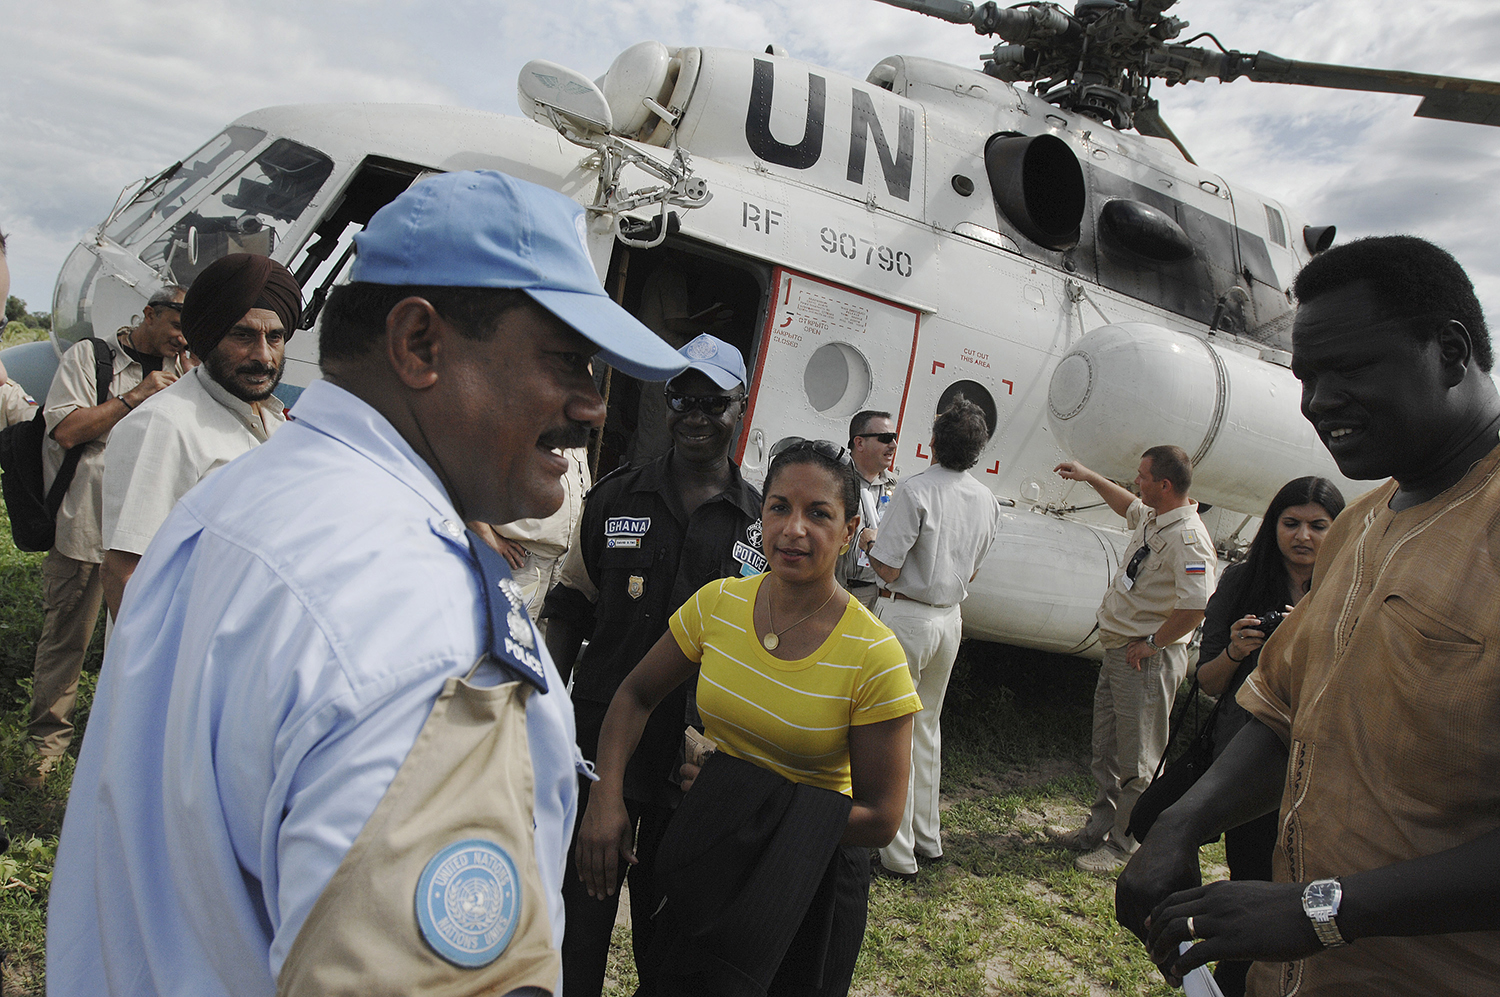 Susan Rice, then U.S. ambassador to the United Nations, visits the village of Malau in South Sudan on May 24, 2011.